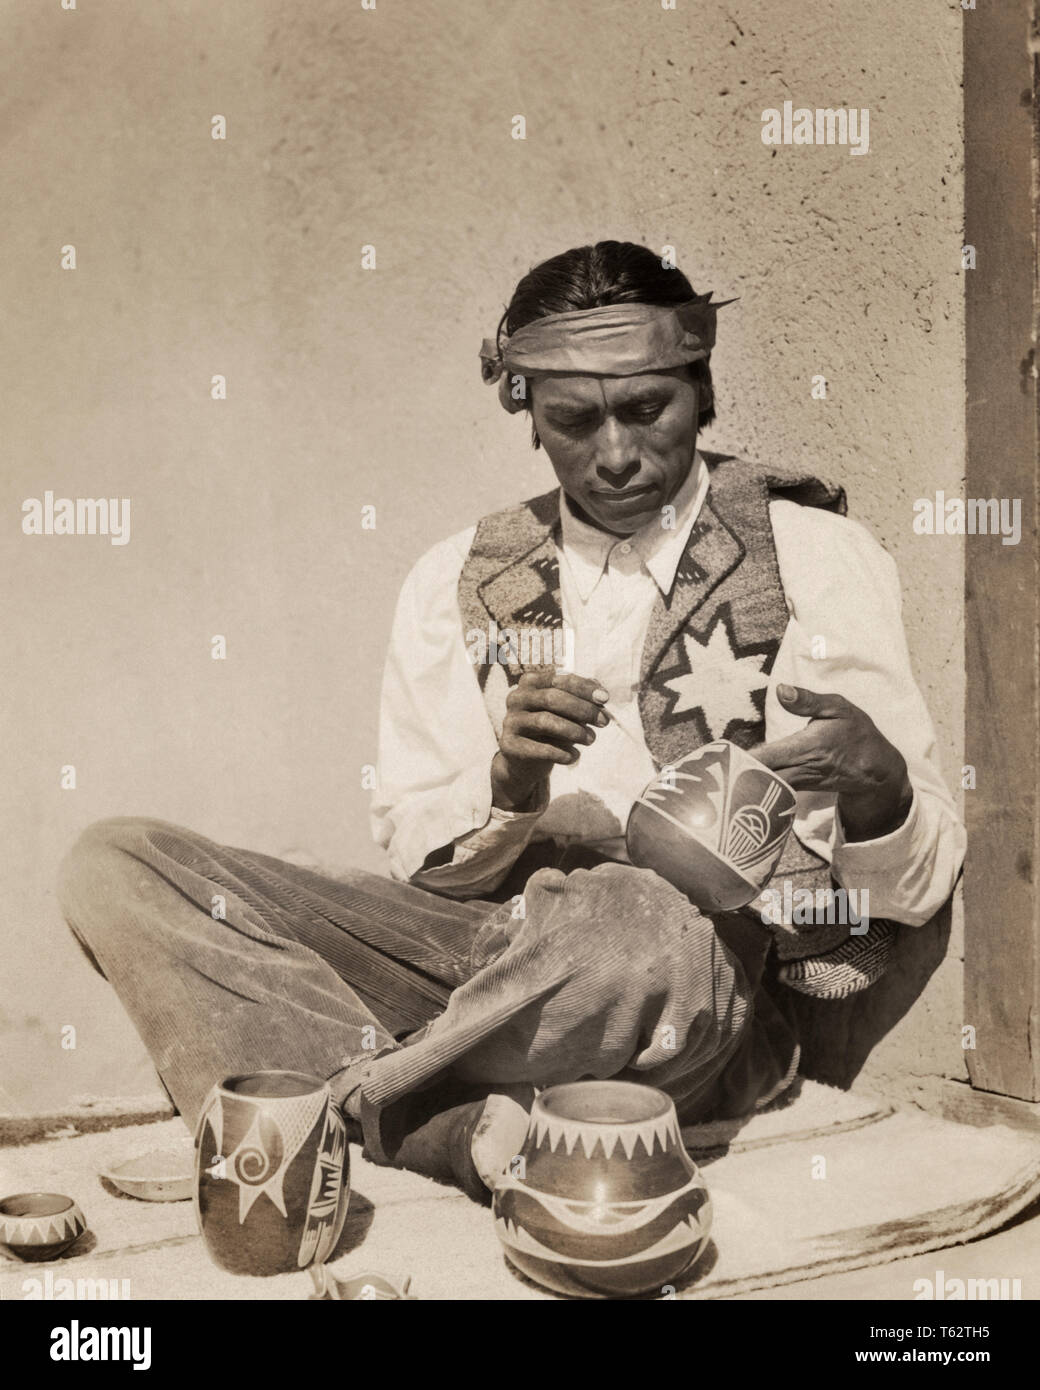 1930s Native American Man Painting Glazing Pottery San Ildefonso Pueblo New Mexico I1580 Har001 Hars B W North America High Angle Occupations Imagination Stylish Native American Pueblo Cooperation Creativity Mid Adult Mid Adult Man,Industrial Small Modern Office Design